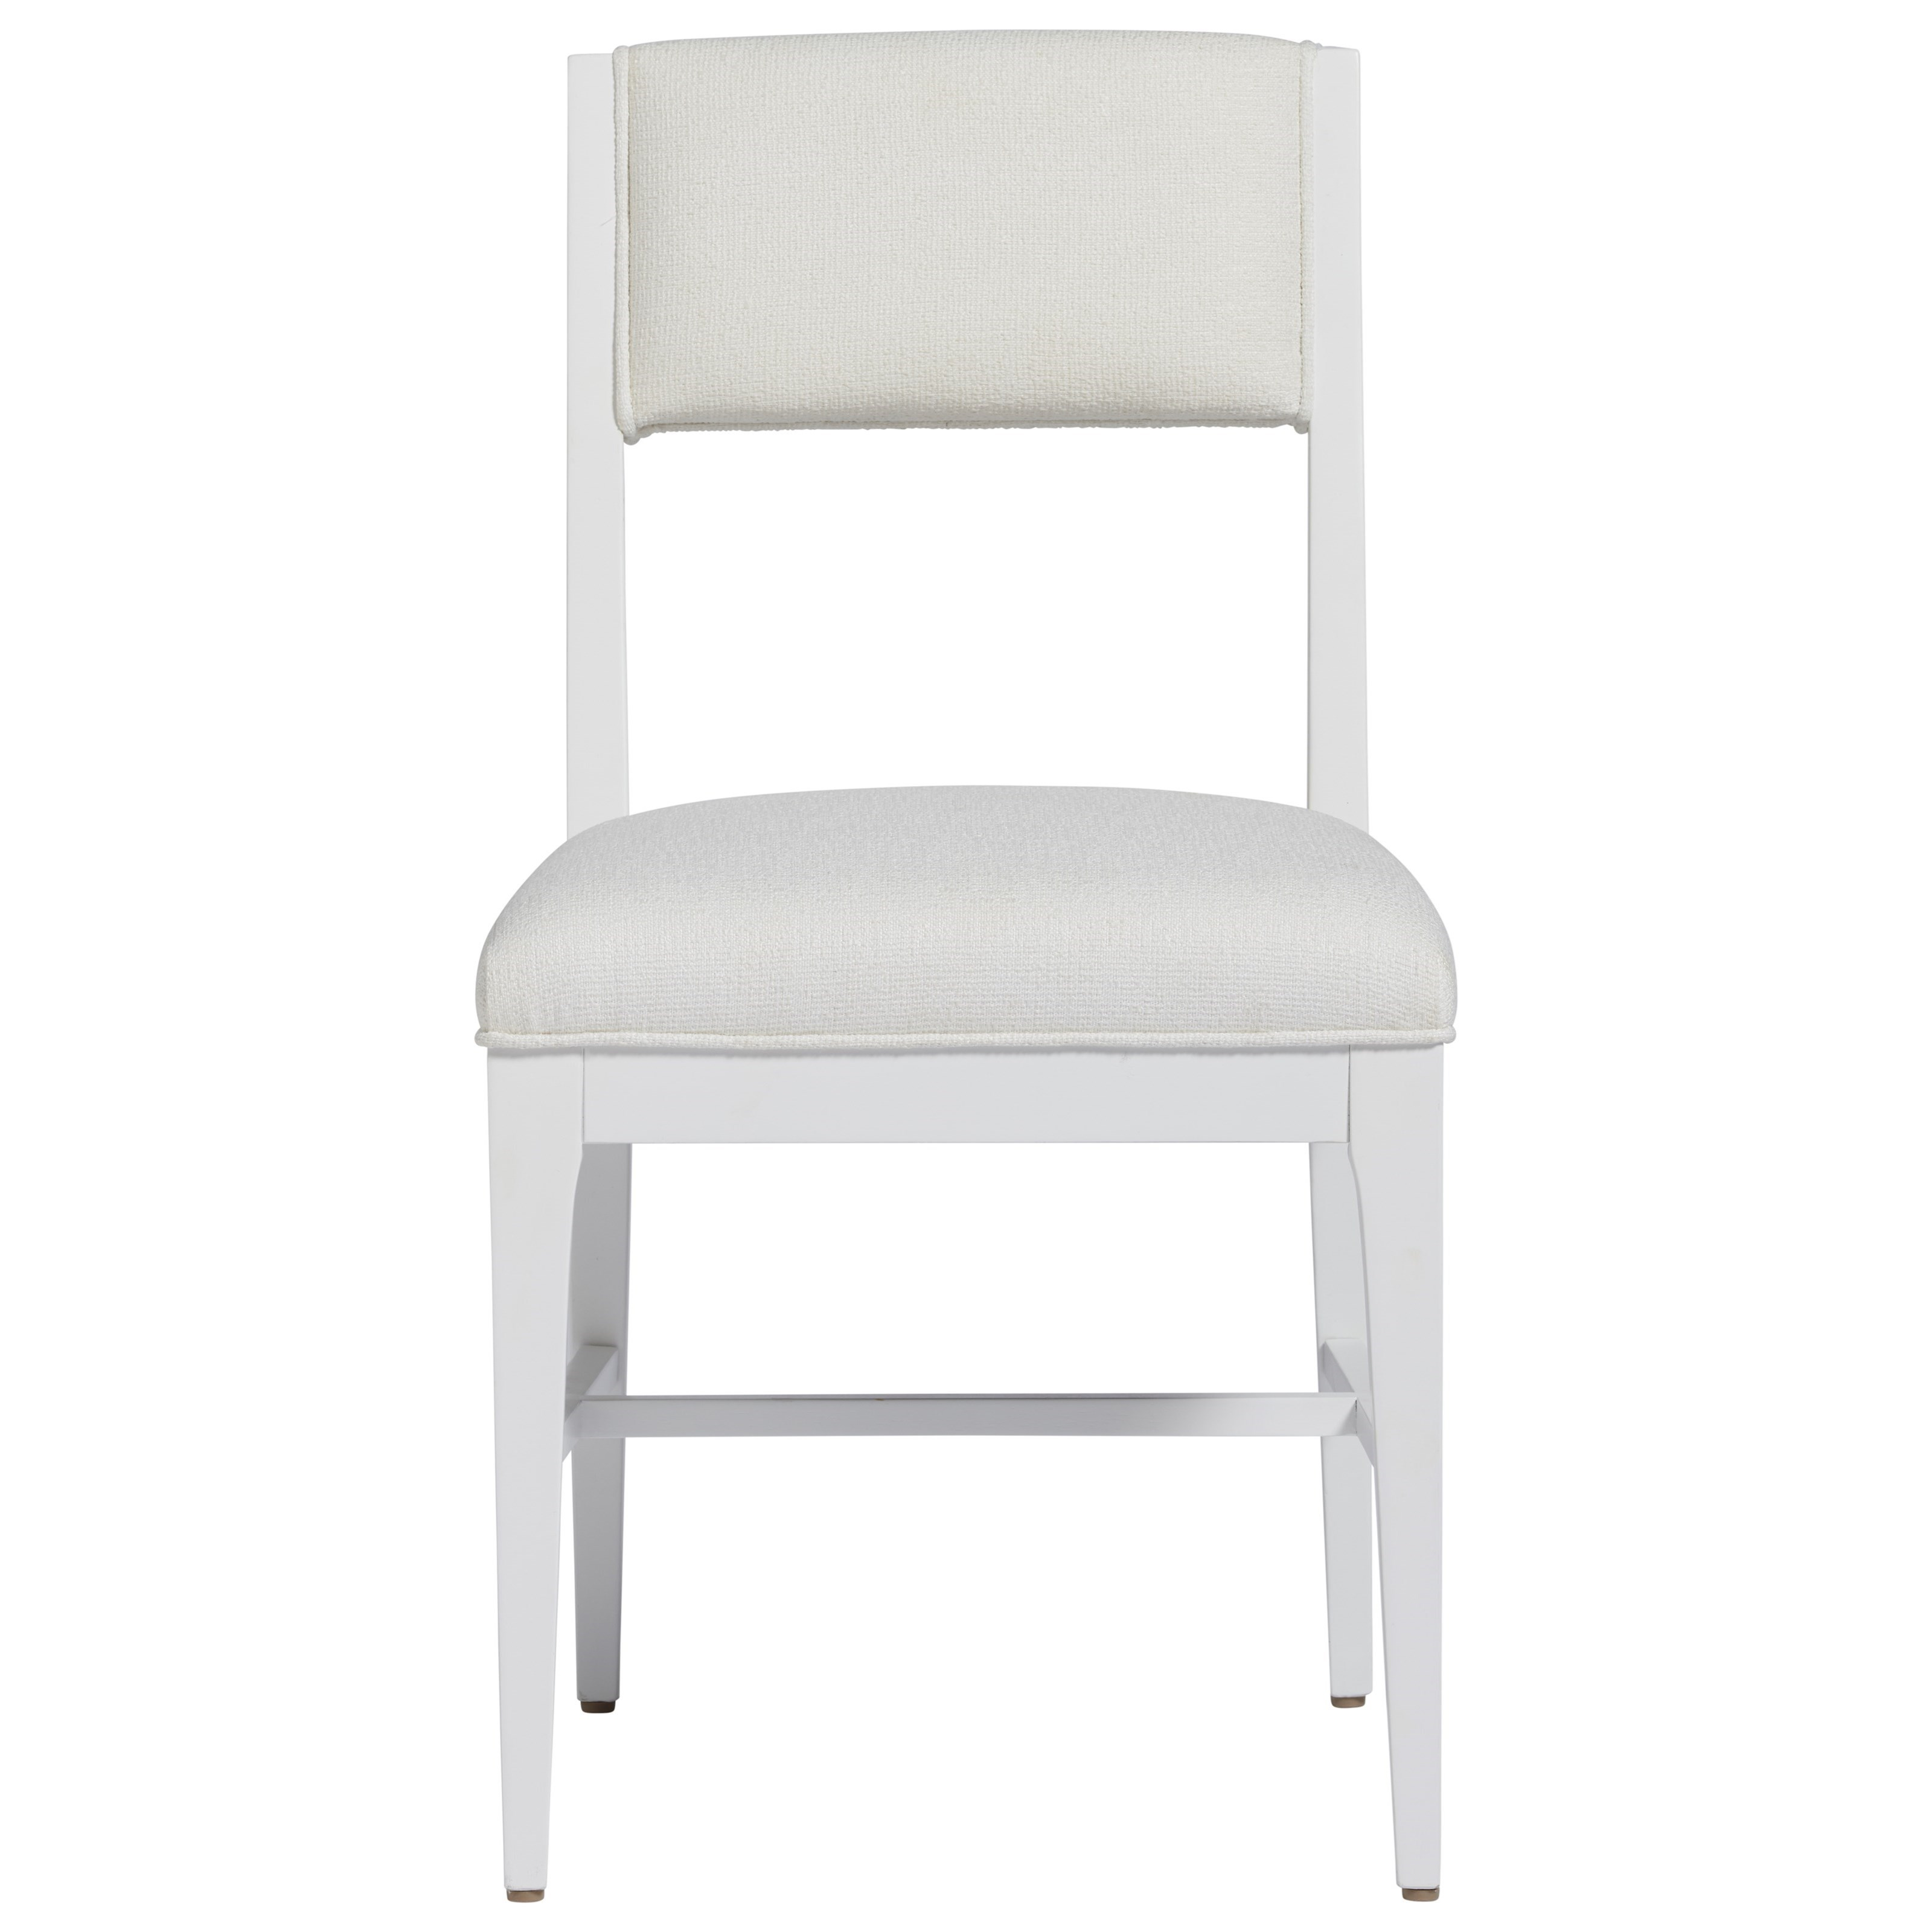 Modern Presley Dining Chair - Hyde Snow by Universal at Baer's Furniture